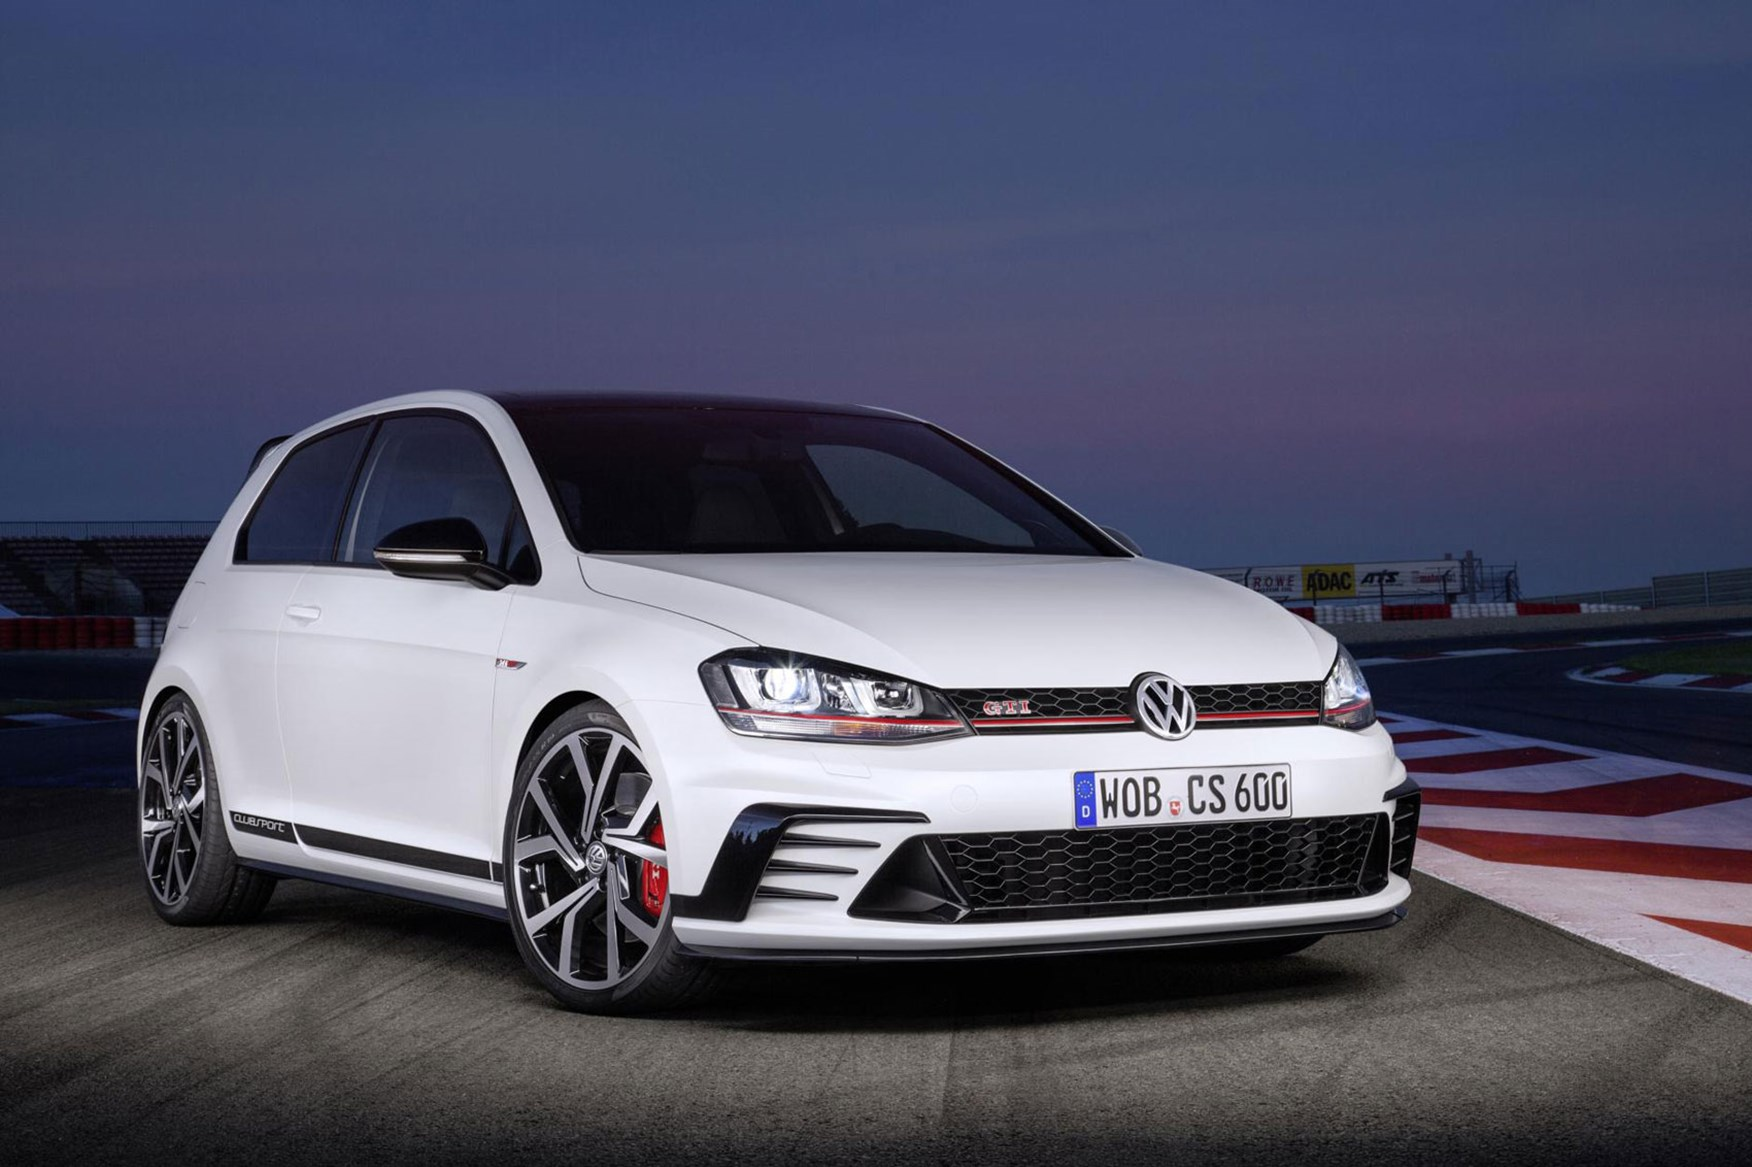 Vw Golf Gti Clubsport 2016 The Most Powerful Gti Yet By